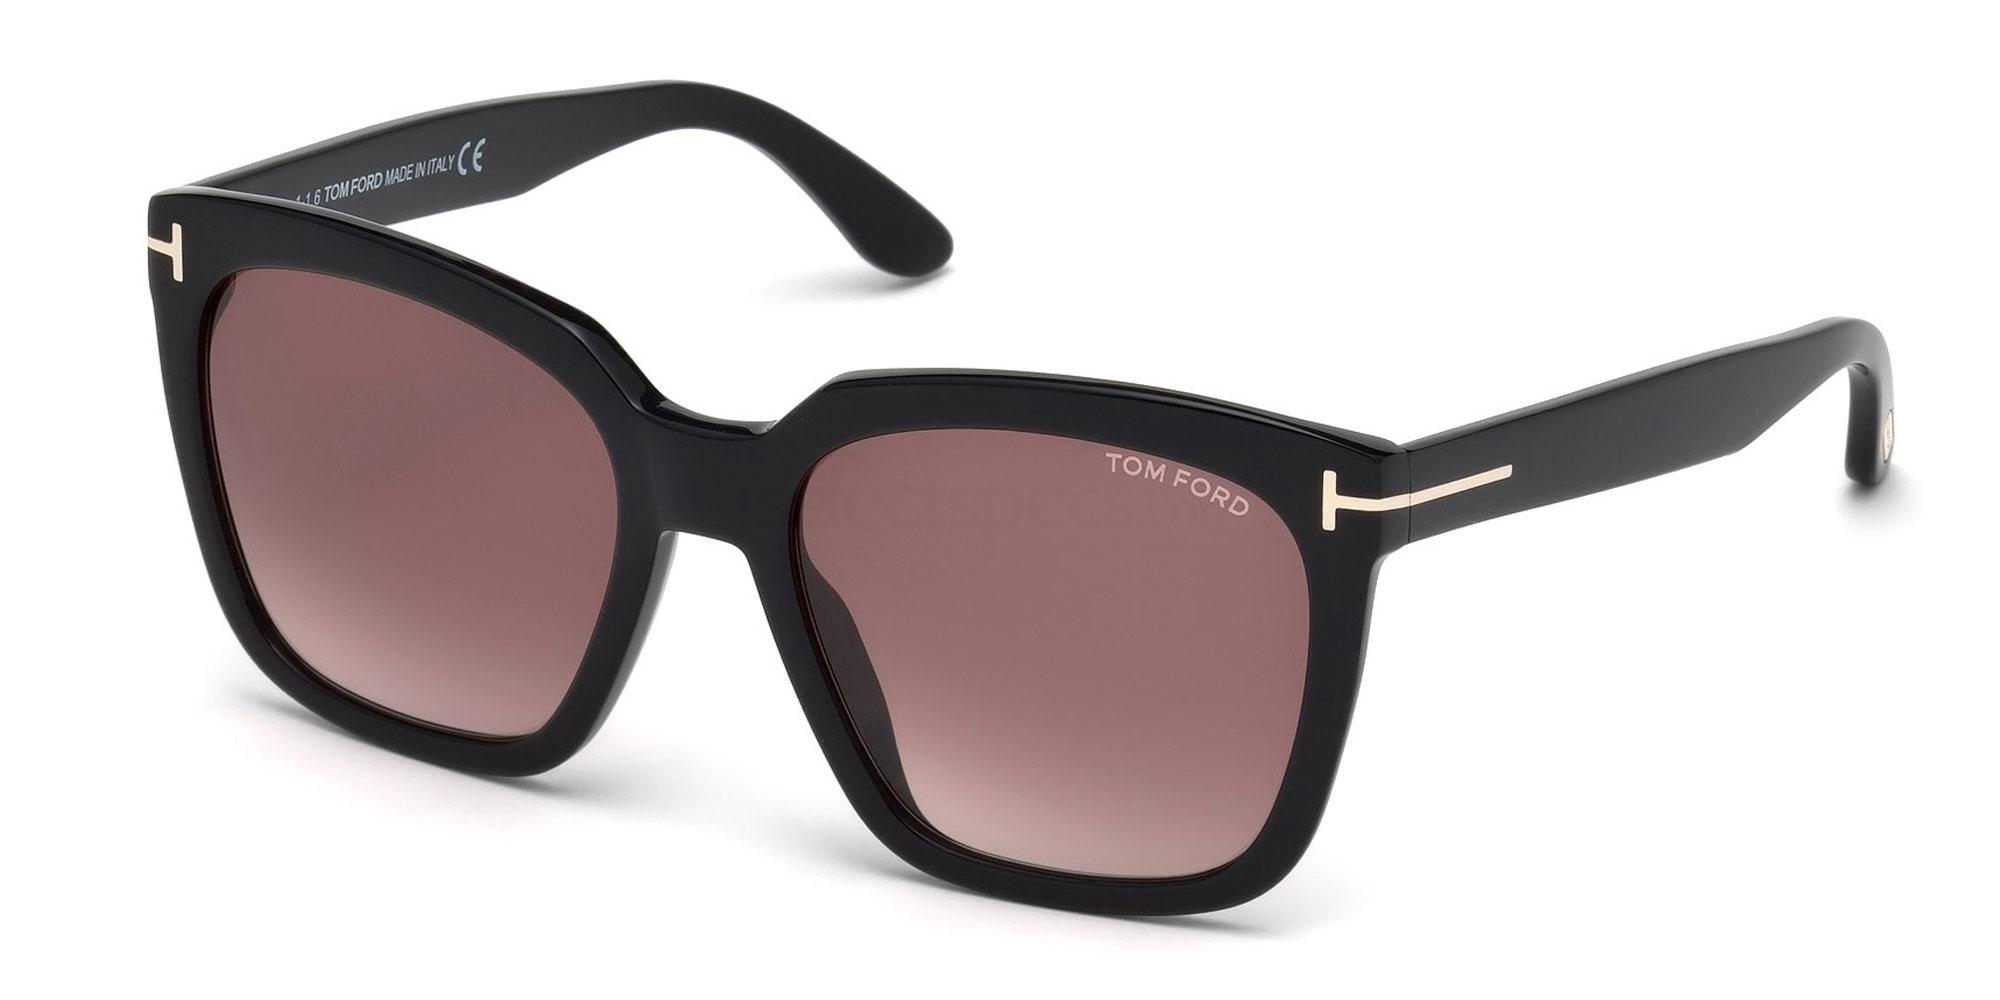 01T FT0502 Sunglasses, Tom Ford